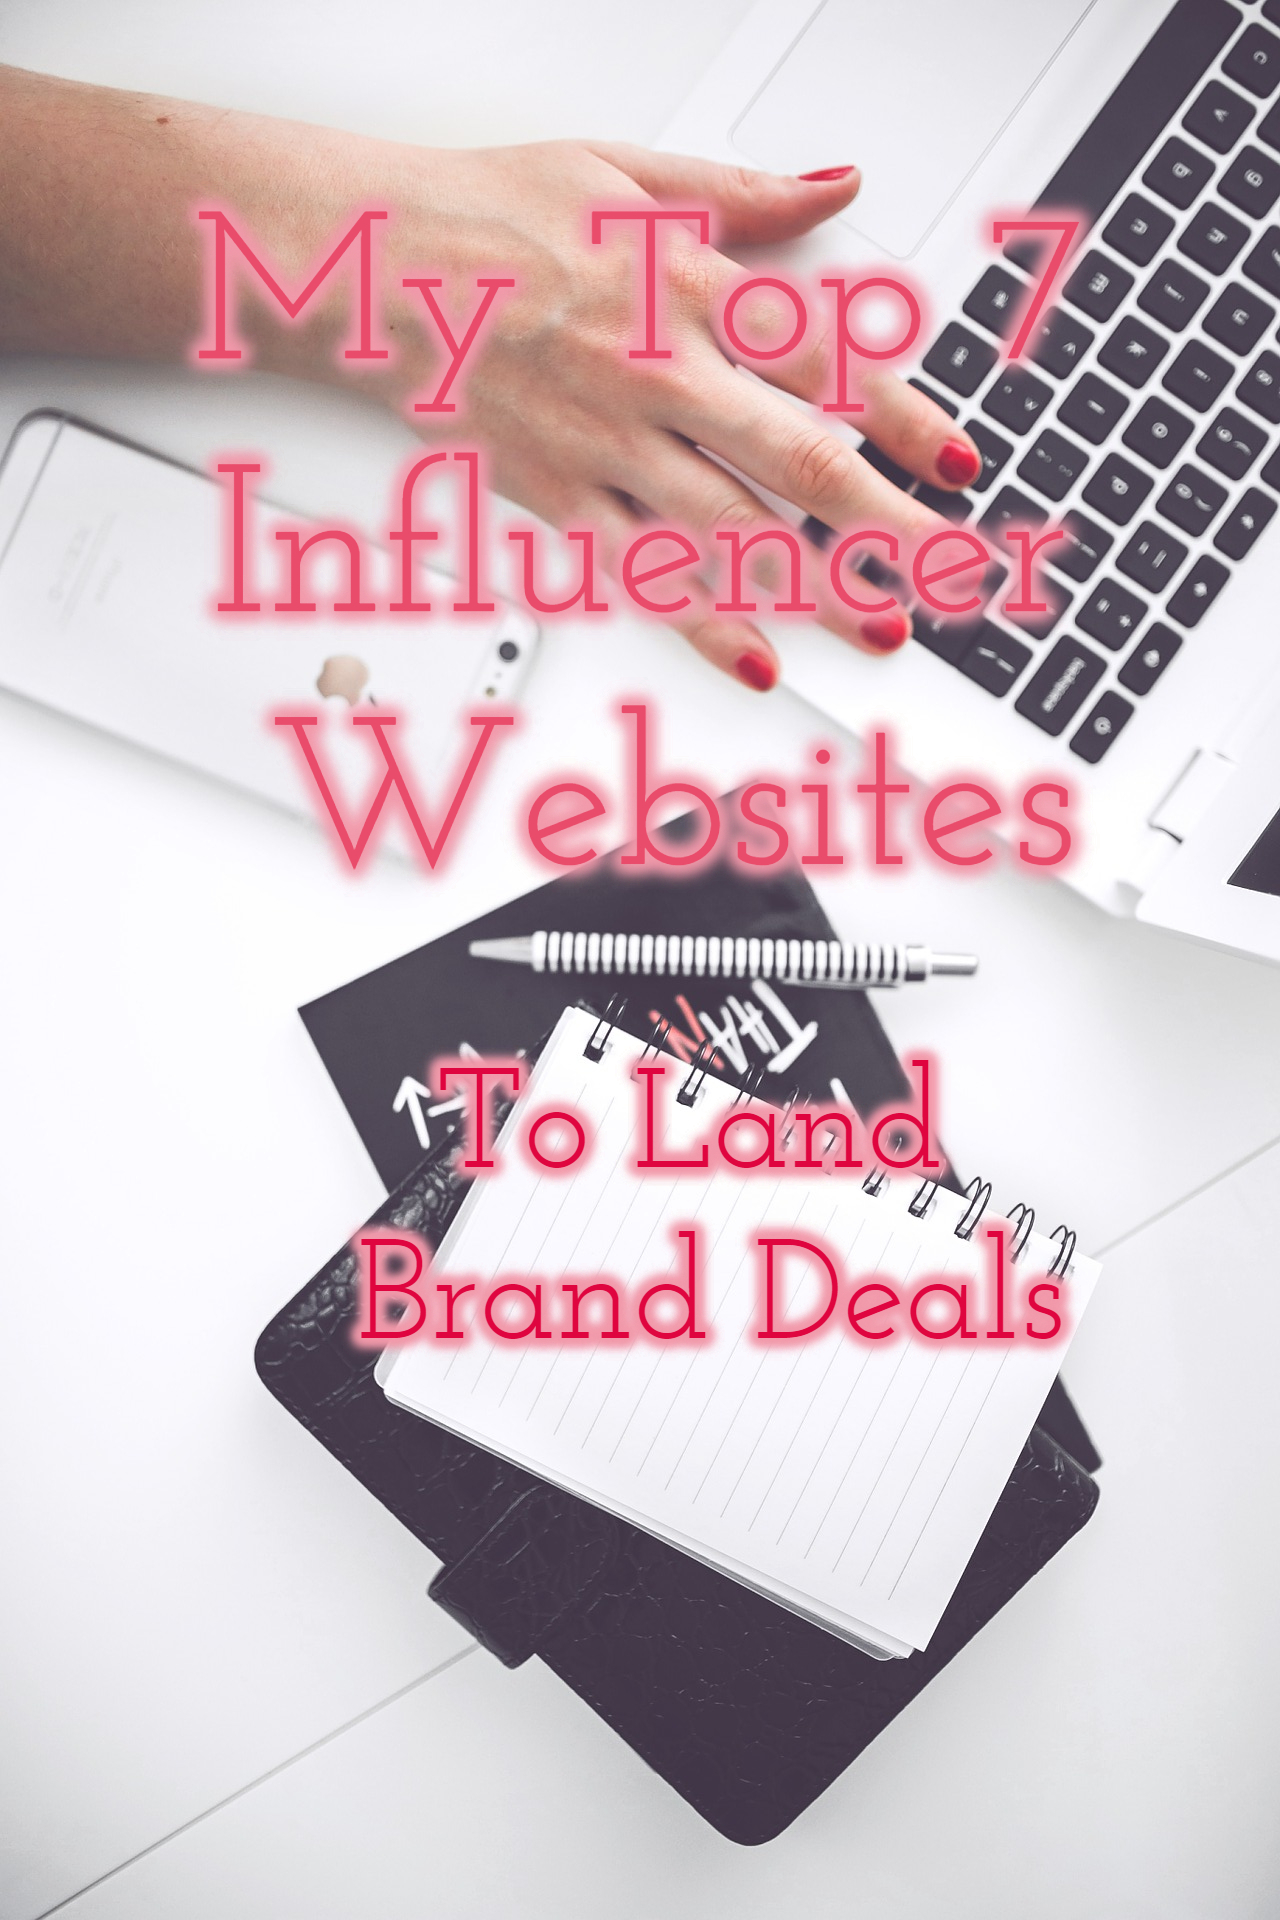 Top Influencer Websites